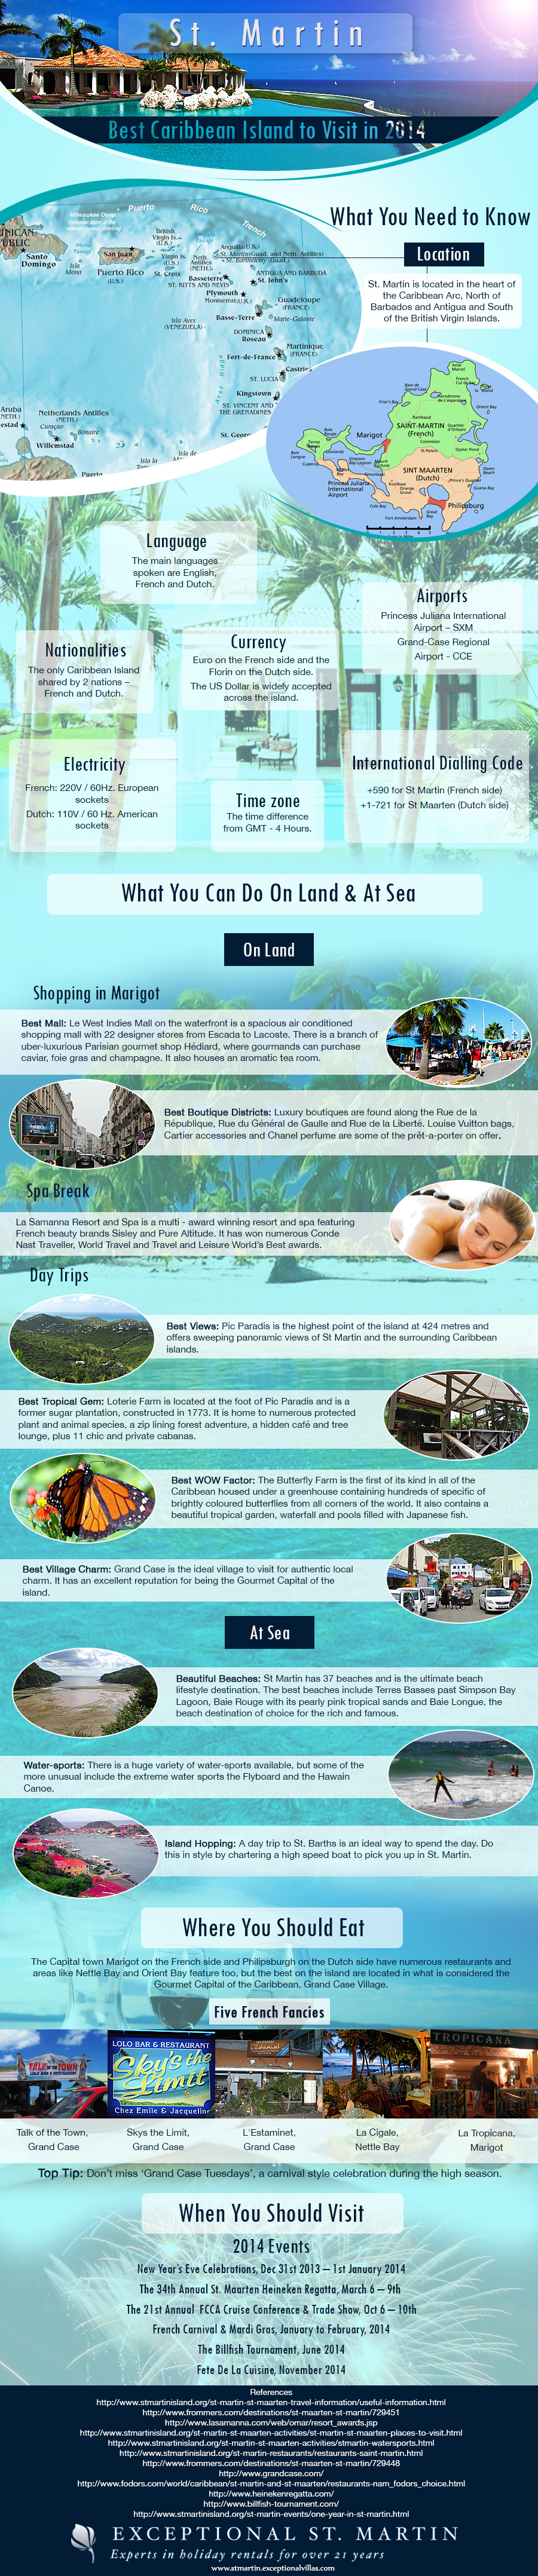 An infographic that outlines many of the rather good reasons to visit St Martin in 2014